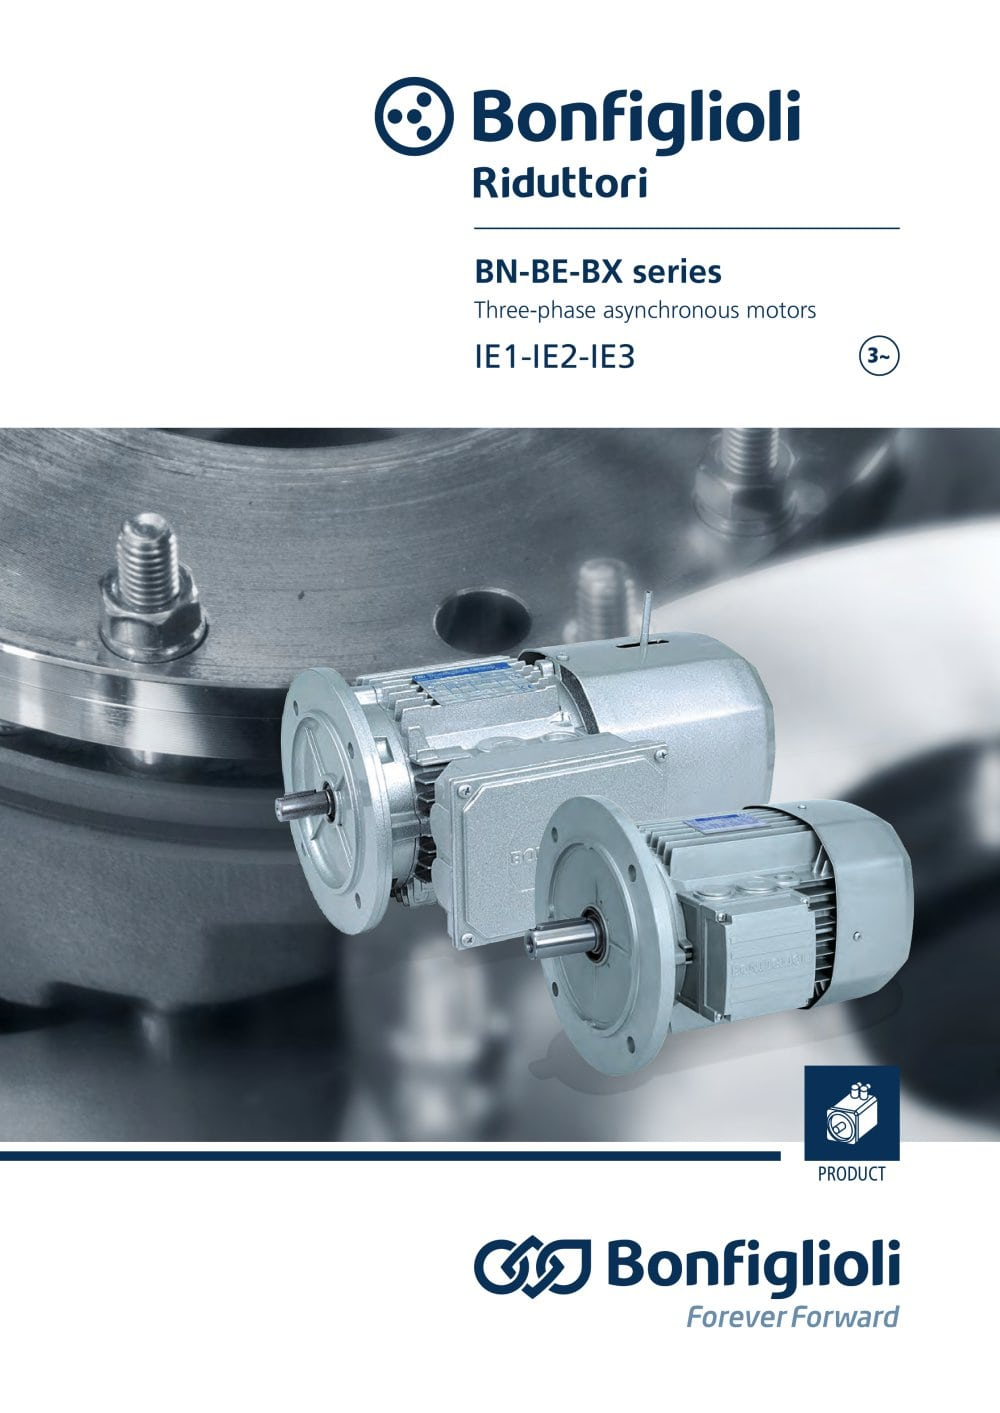 BN - BE - BX series - Three-phase asynchronous motors IE1-IE2-IE3 ...